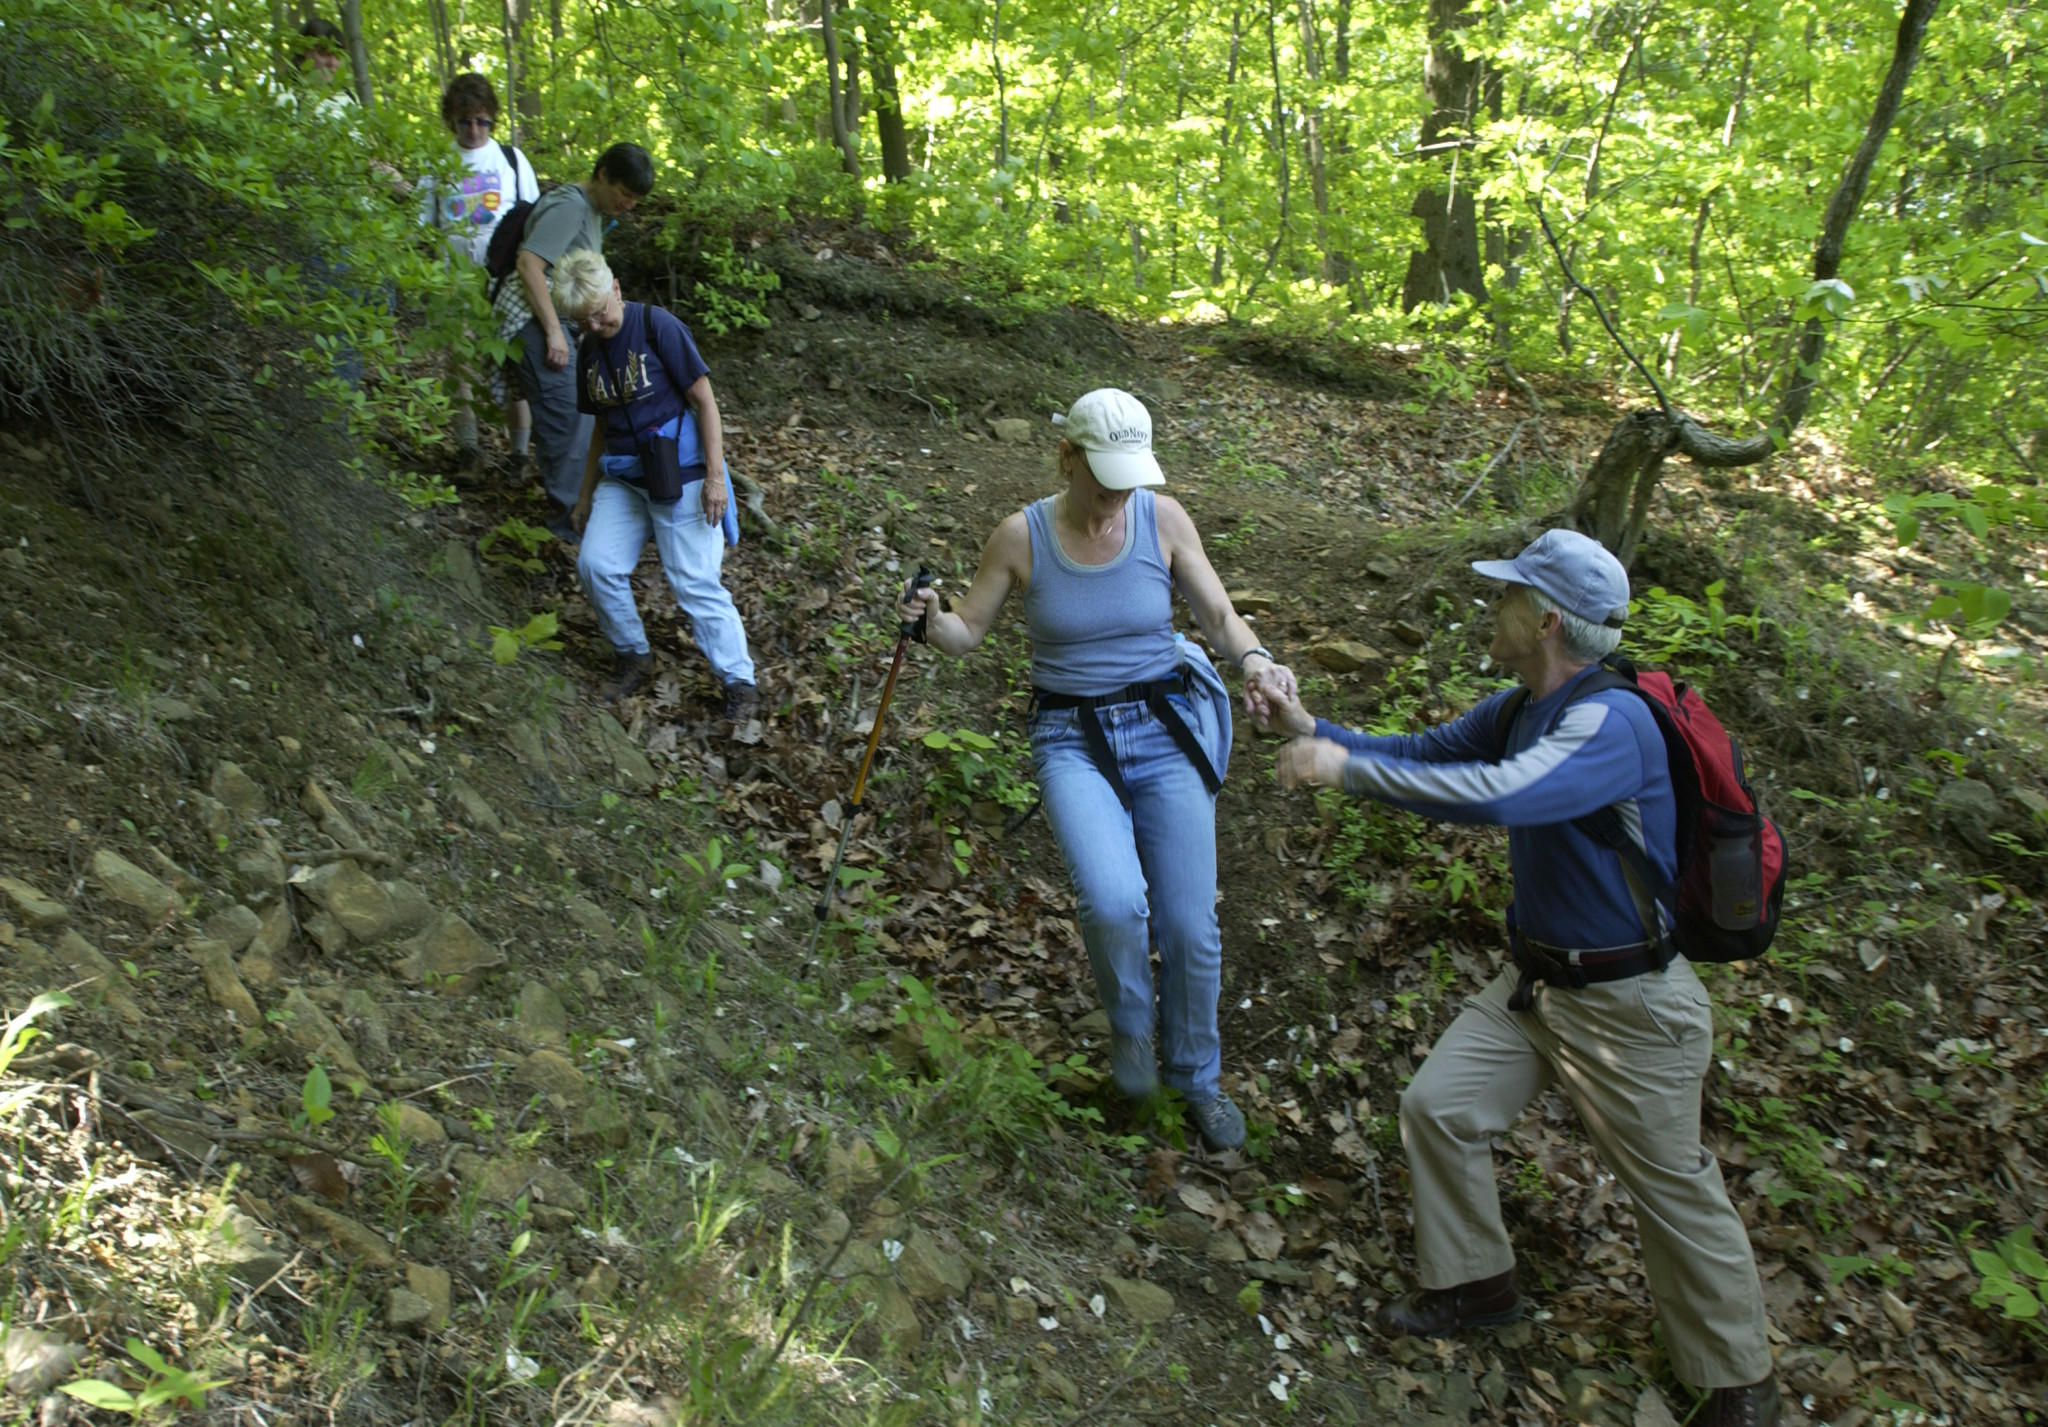 Baltimore, MD -- 5/14/03 -- Bill Bauer (right) assists Marry Moore down a steep section of trail in Leakin Park while hiking a nine-mile circuit with the Wednesday Walkers hiking club. Photo by Jerry Jackson/Staff